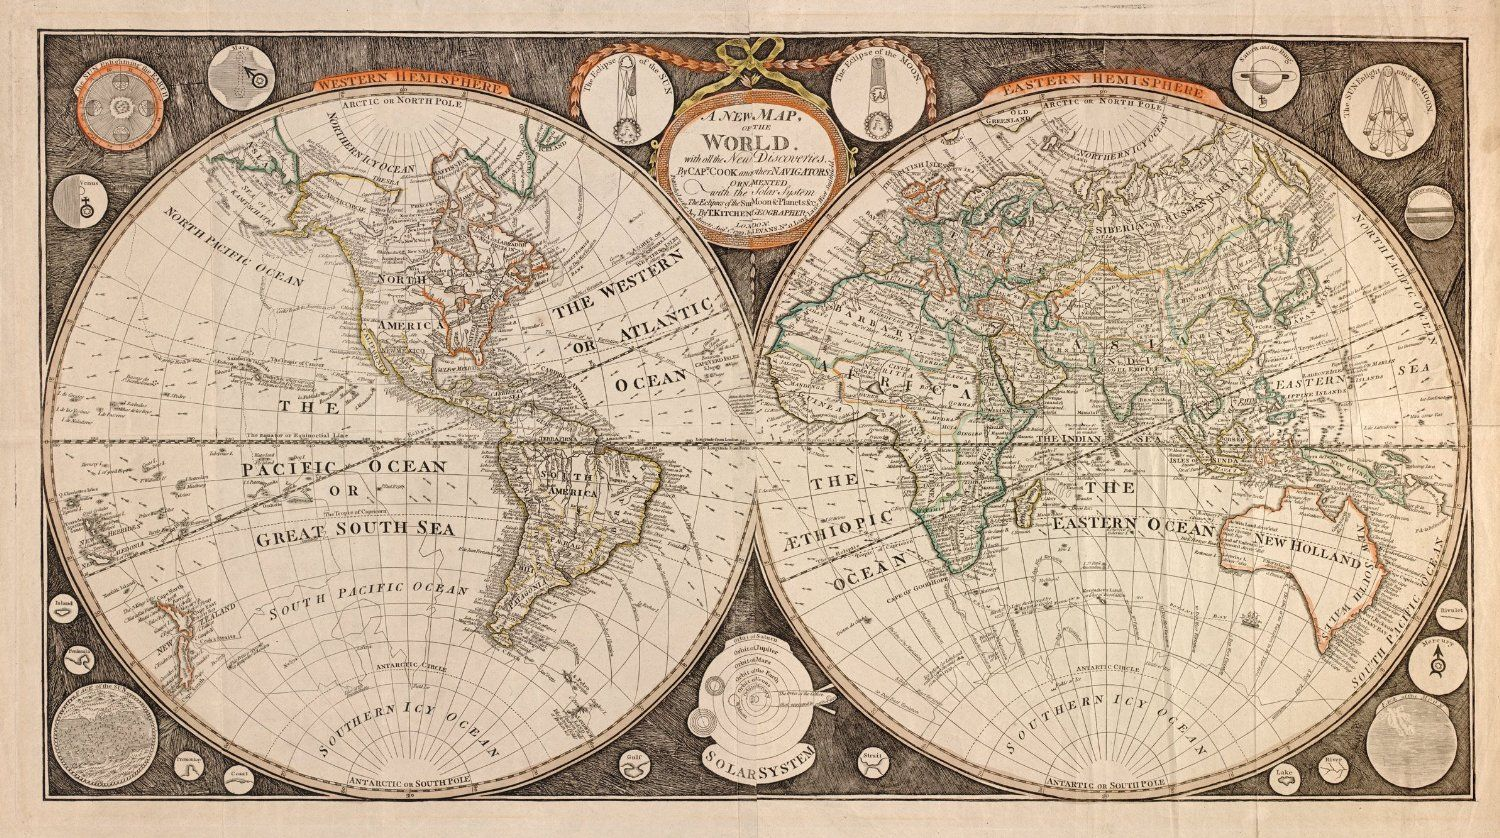 Amazon 1799 old world map of captain cook discoveries map amazon 1799 old world map of captain cook discoveries map reprint 44 gumiabroncs Gallery